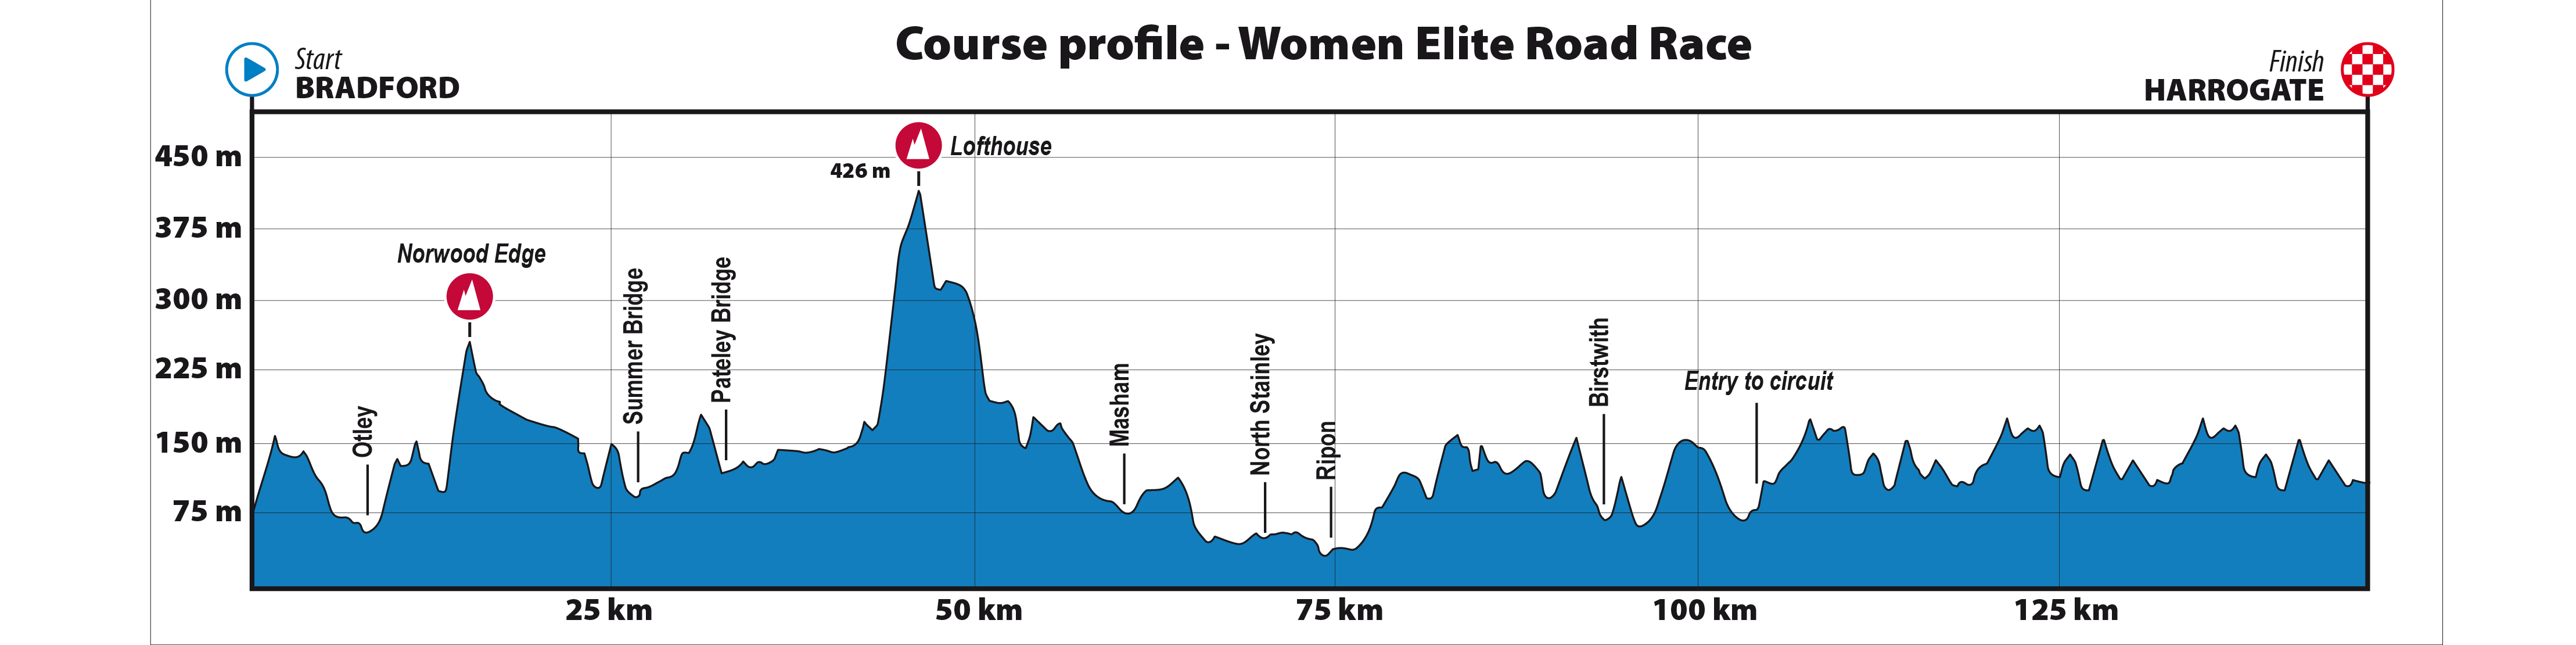 Profile of the elite women's road race